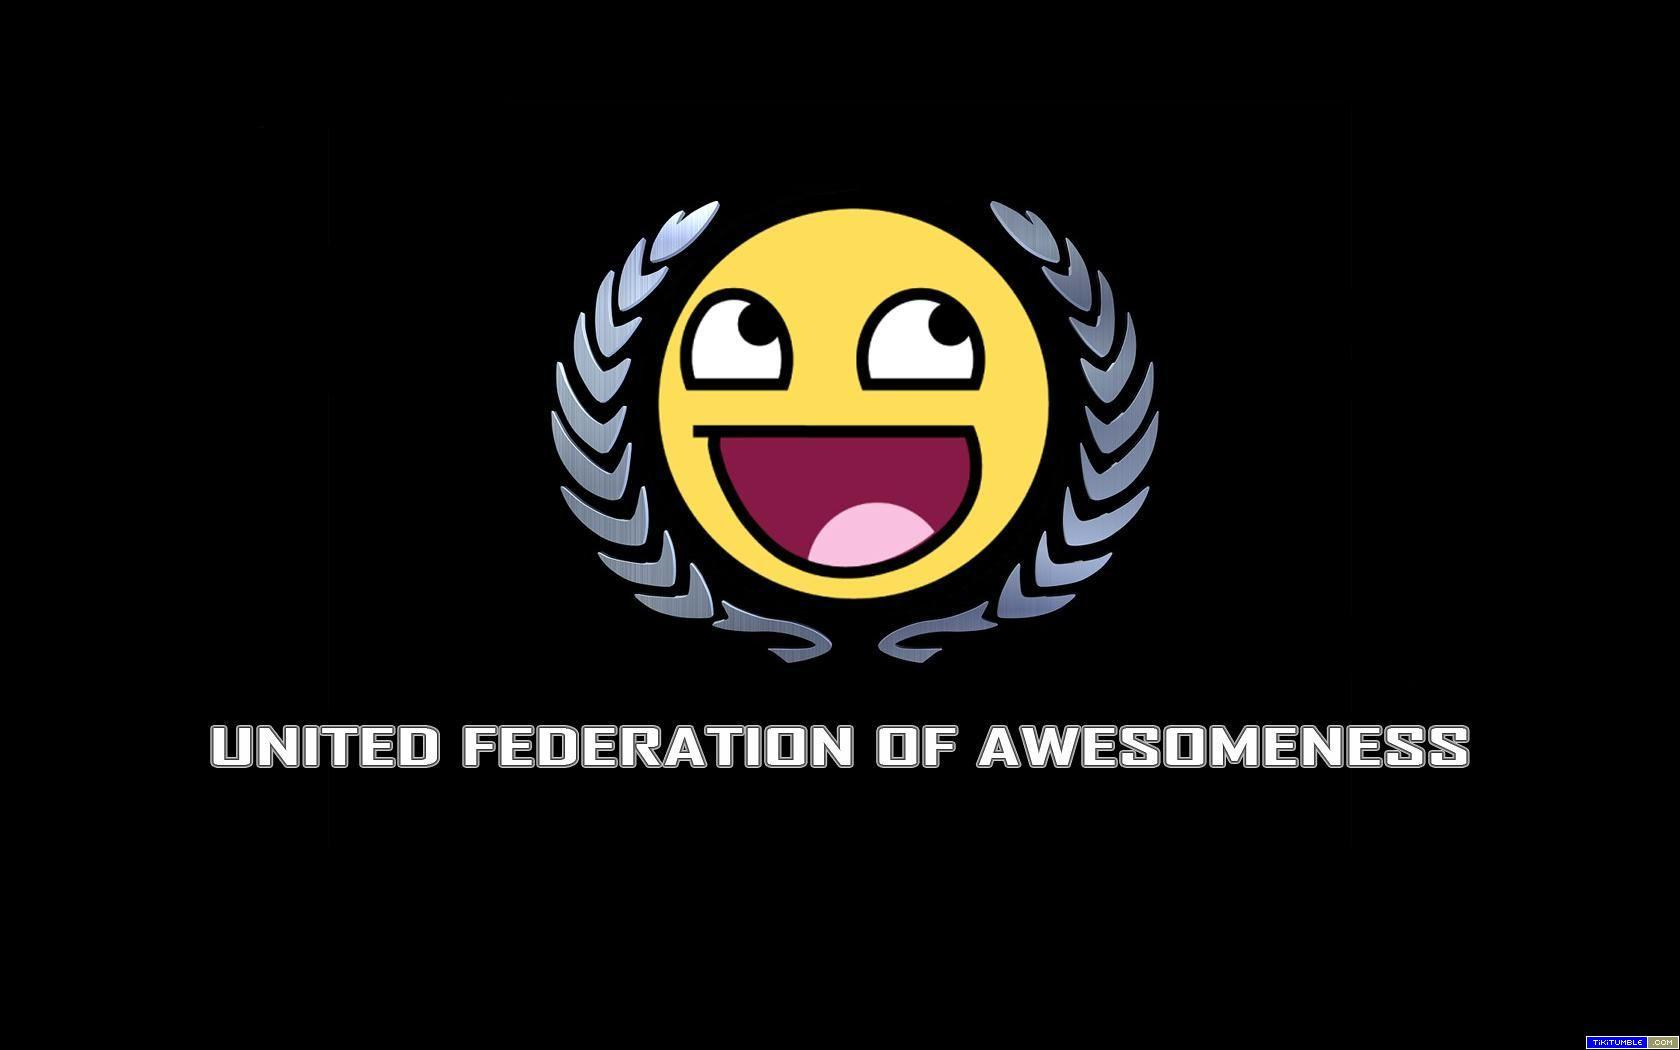 Awesome Face HD Wallpaper